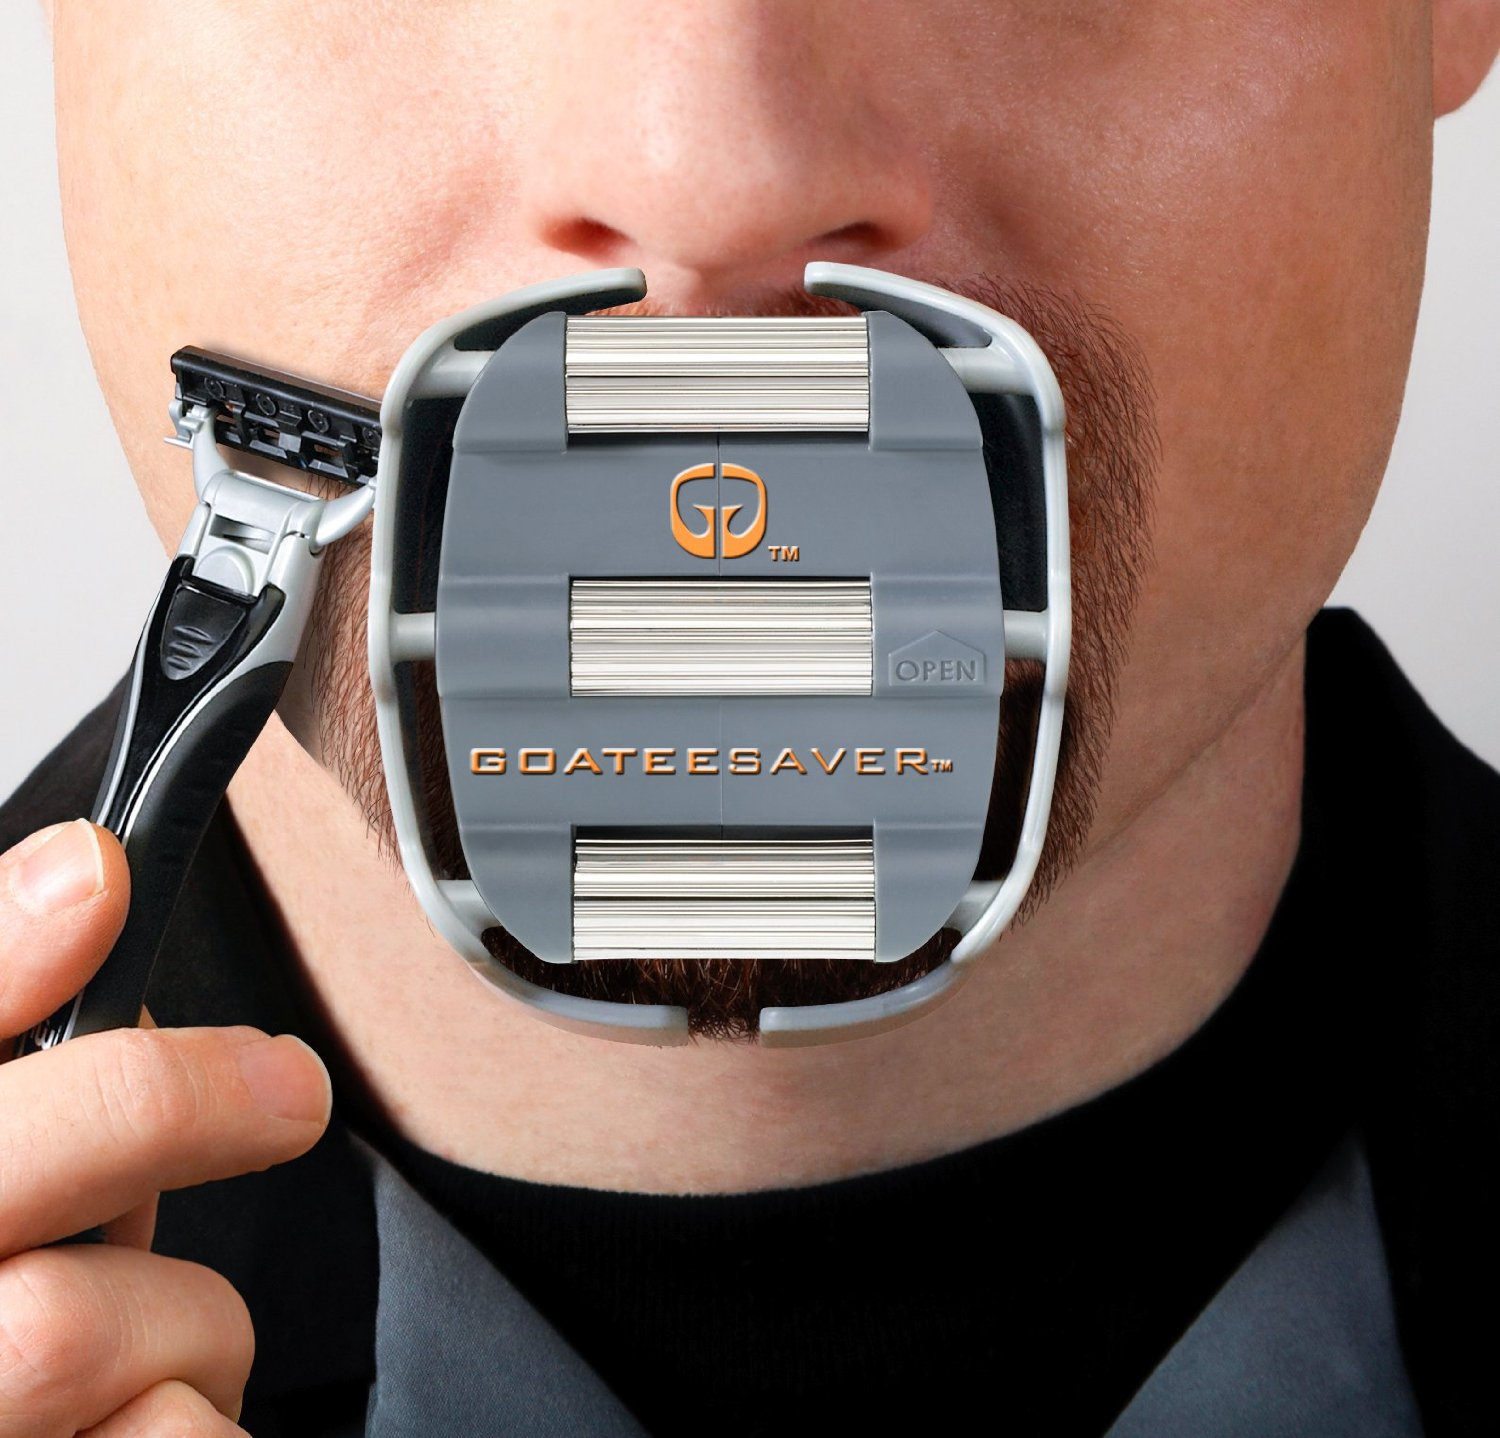 goatee saver review the goatee shaving template best. Black Bedroom Furniture Sets. Home Design Ideas